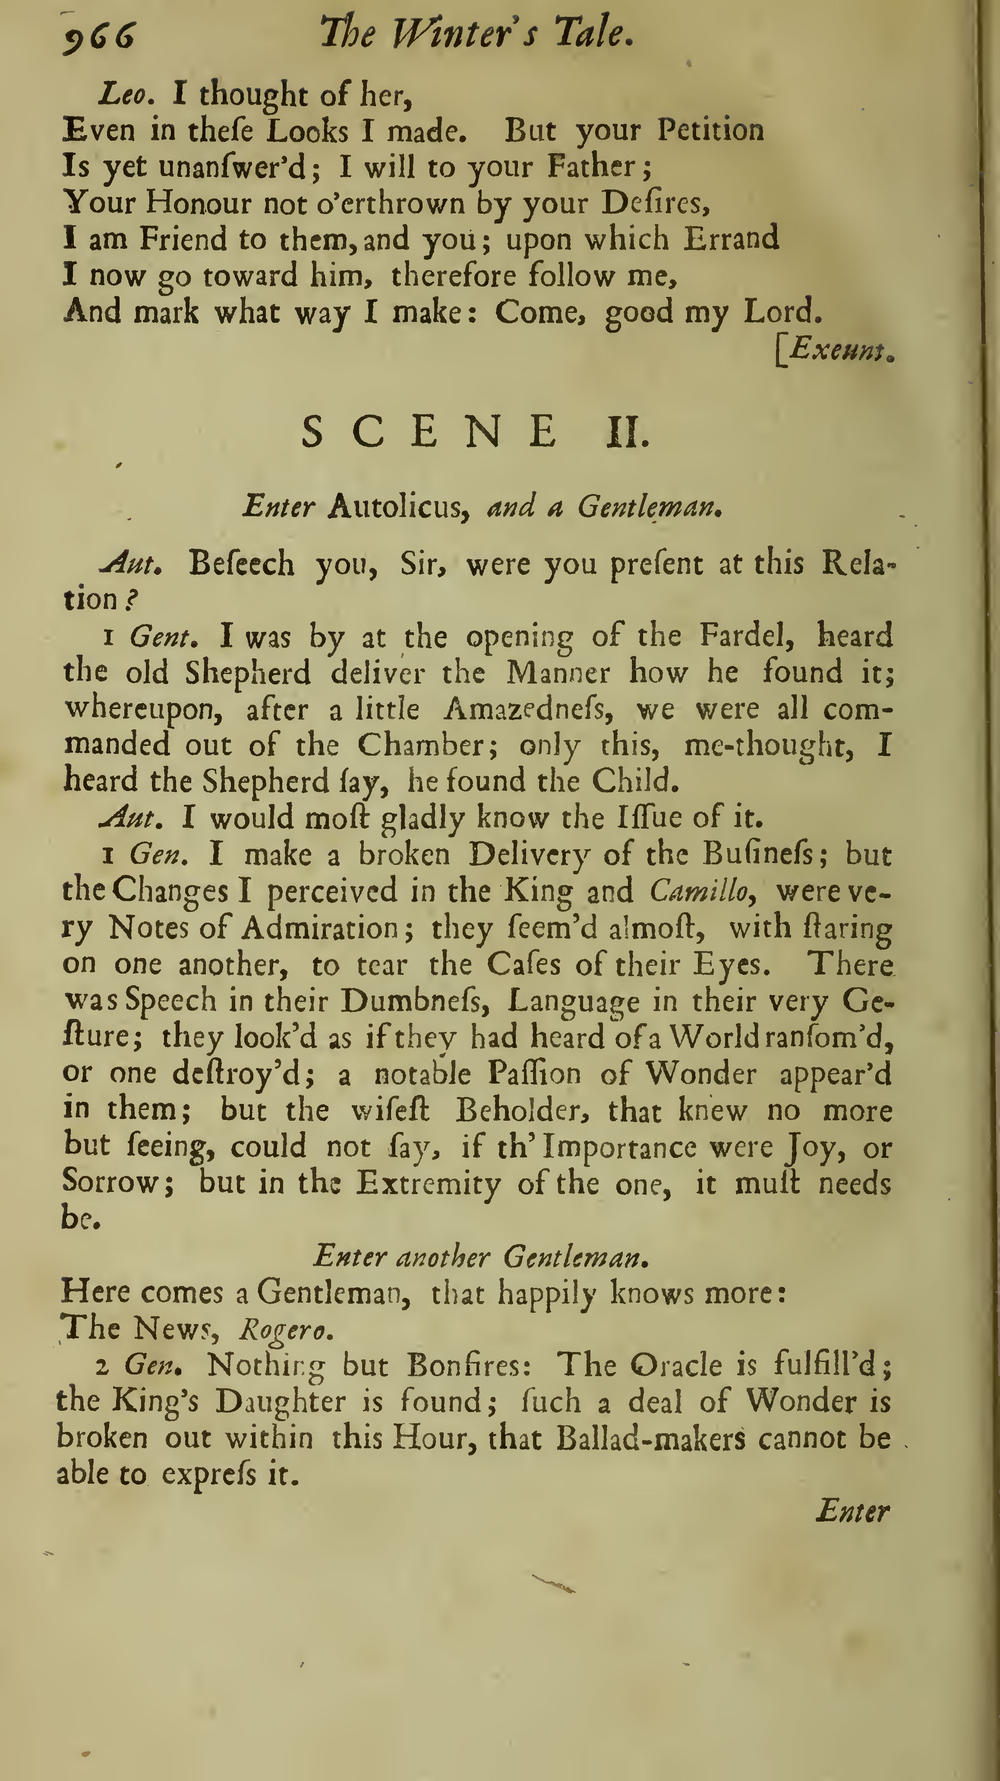 Image of page 518